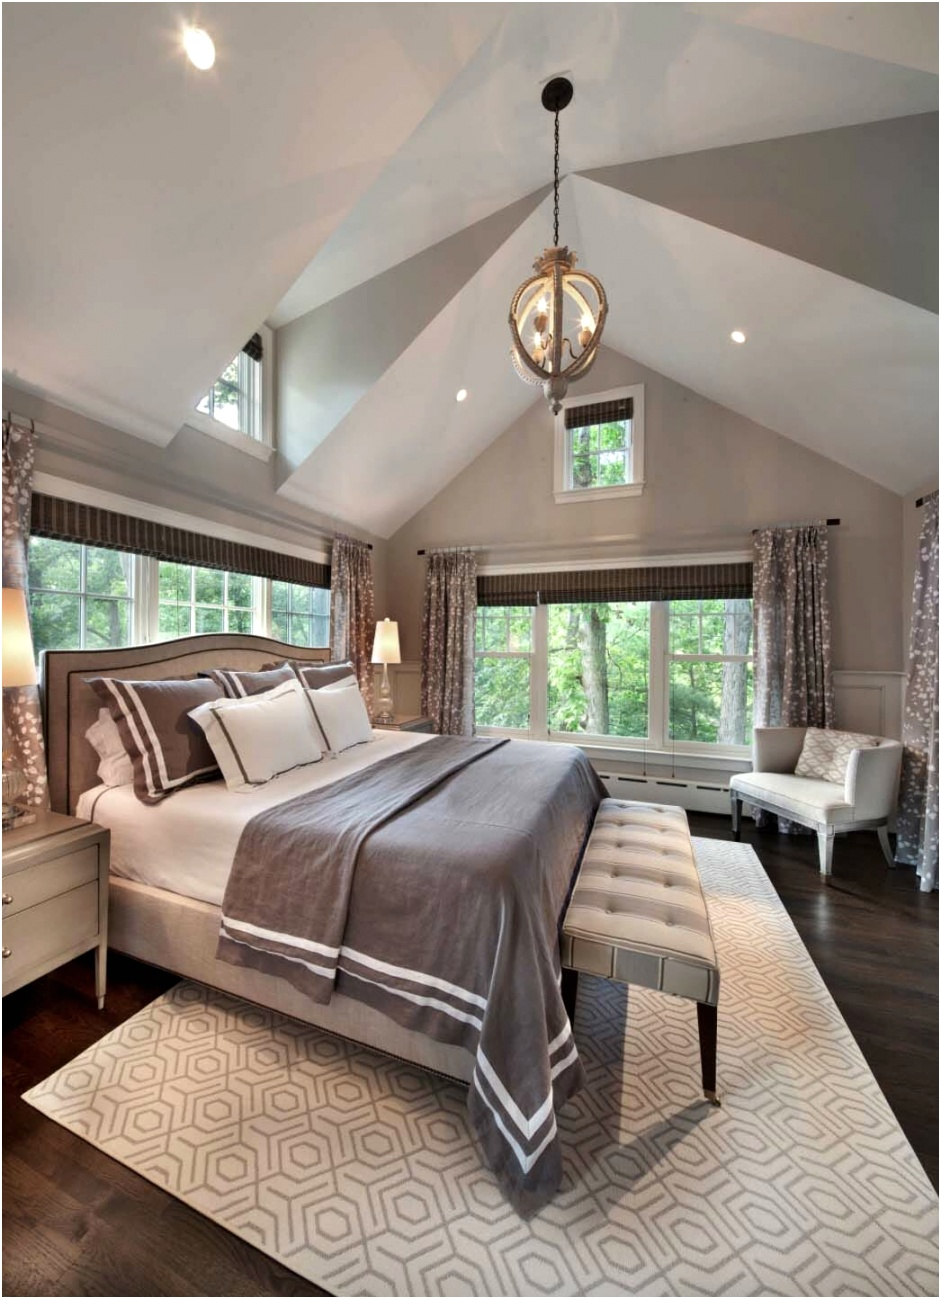 master bedroom ideas for relaxation small paint colors very decorating small master bedrooms decorating spaces design